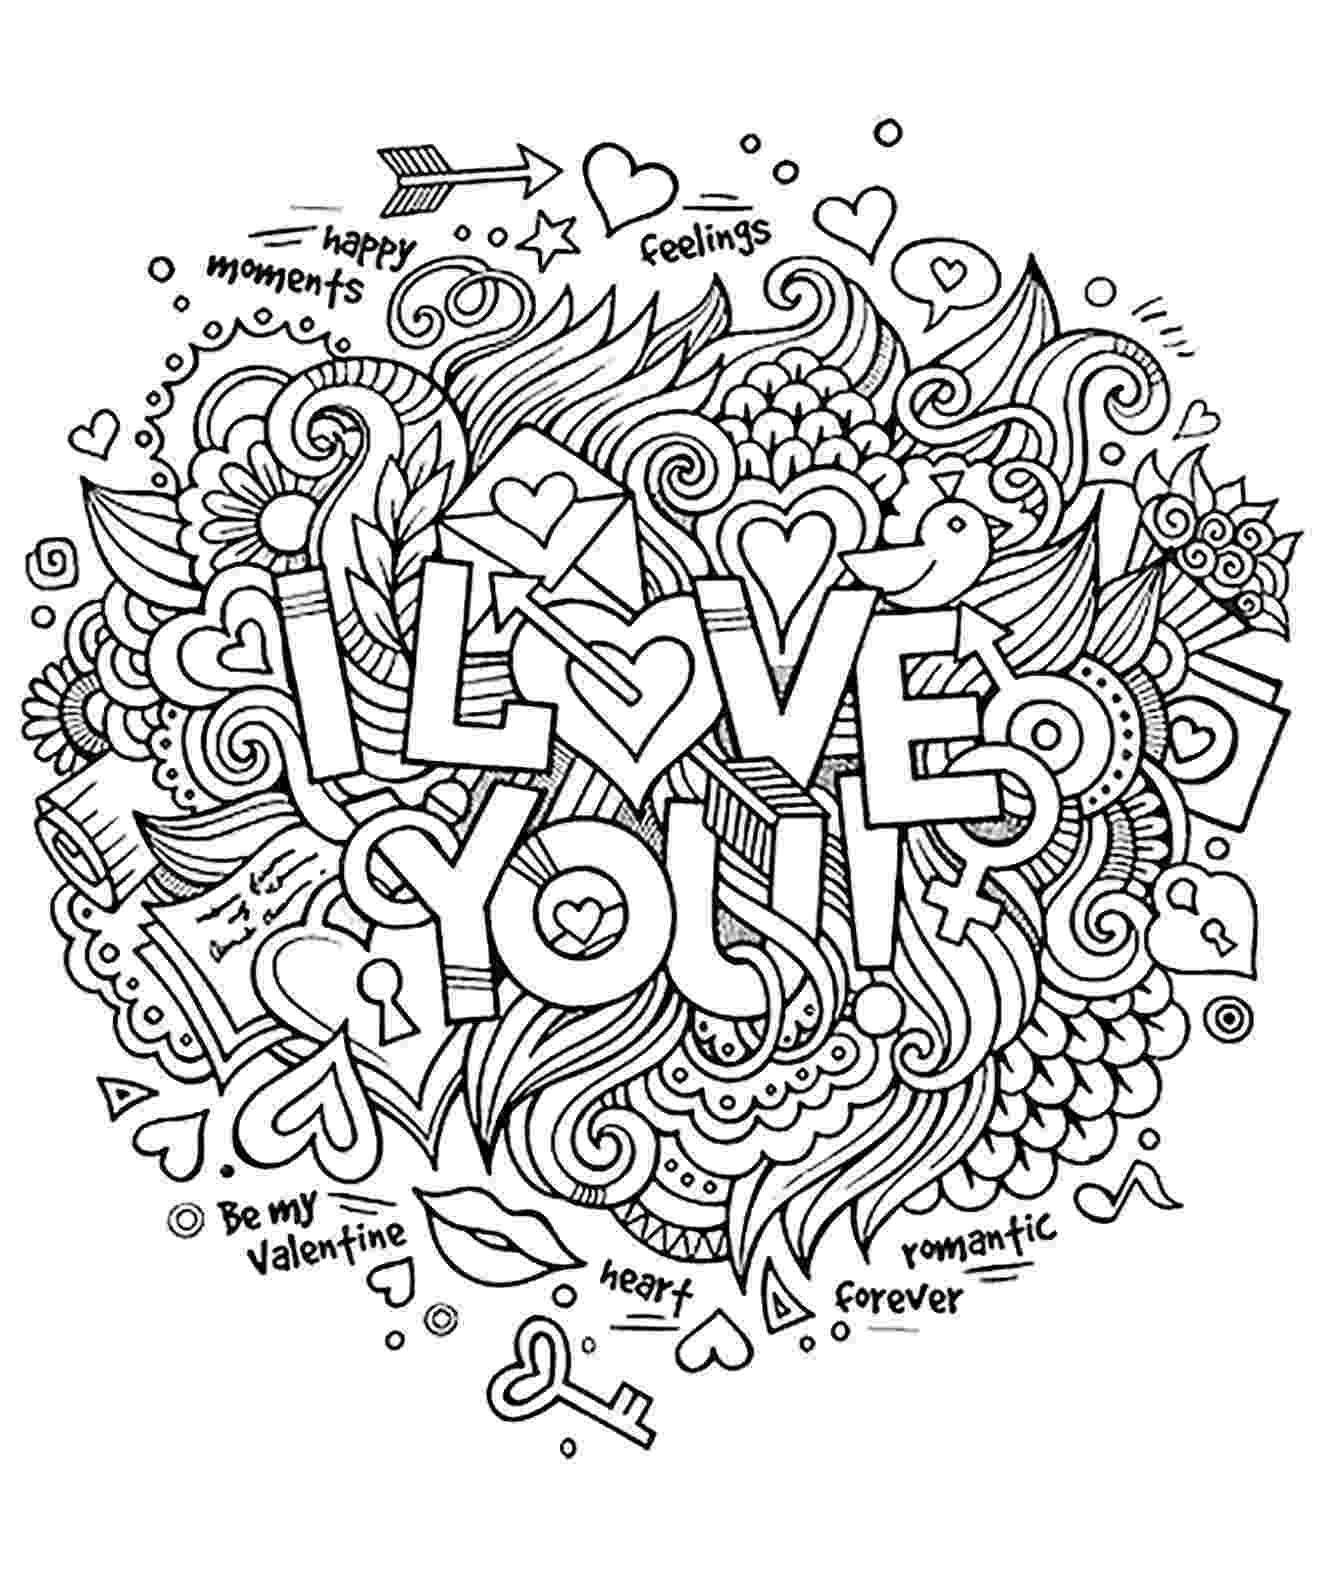 coloring pages love you quoti love you quot coloring pages you love pages coloring